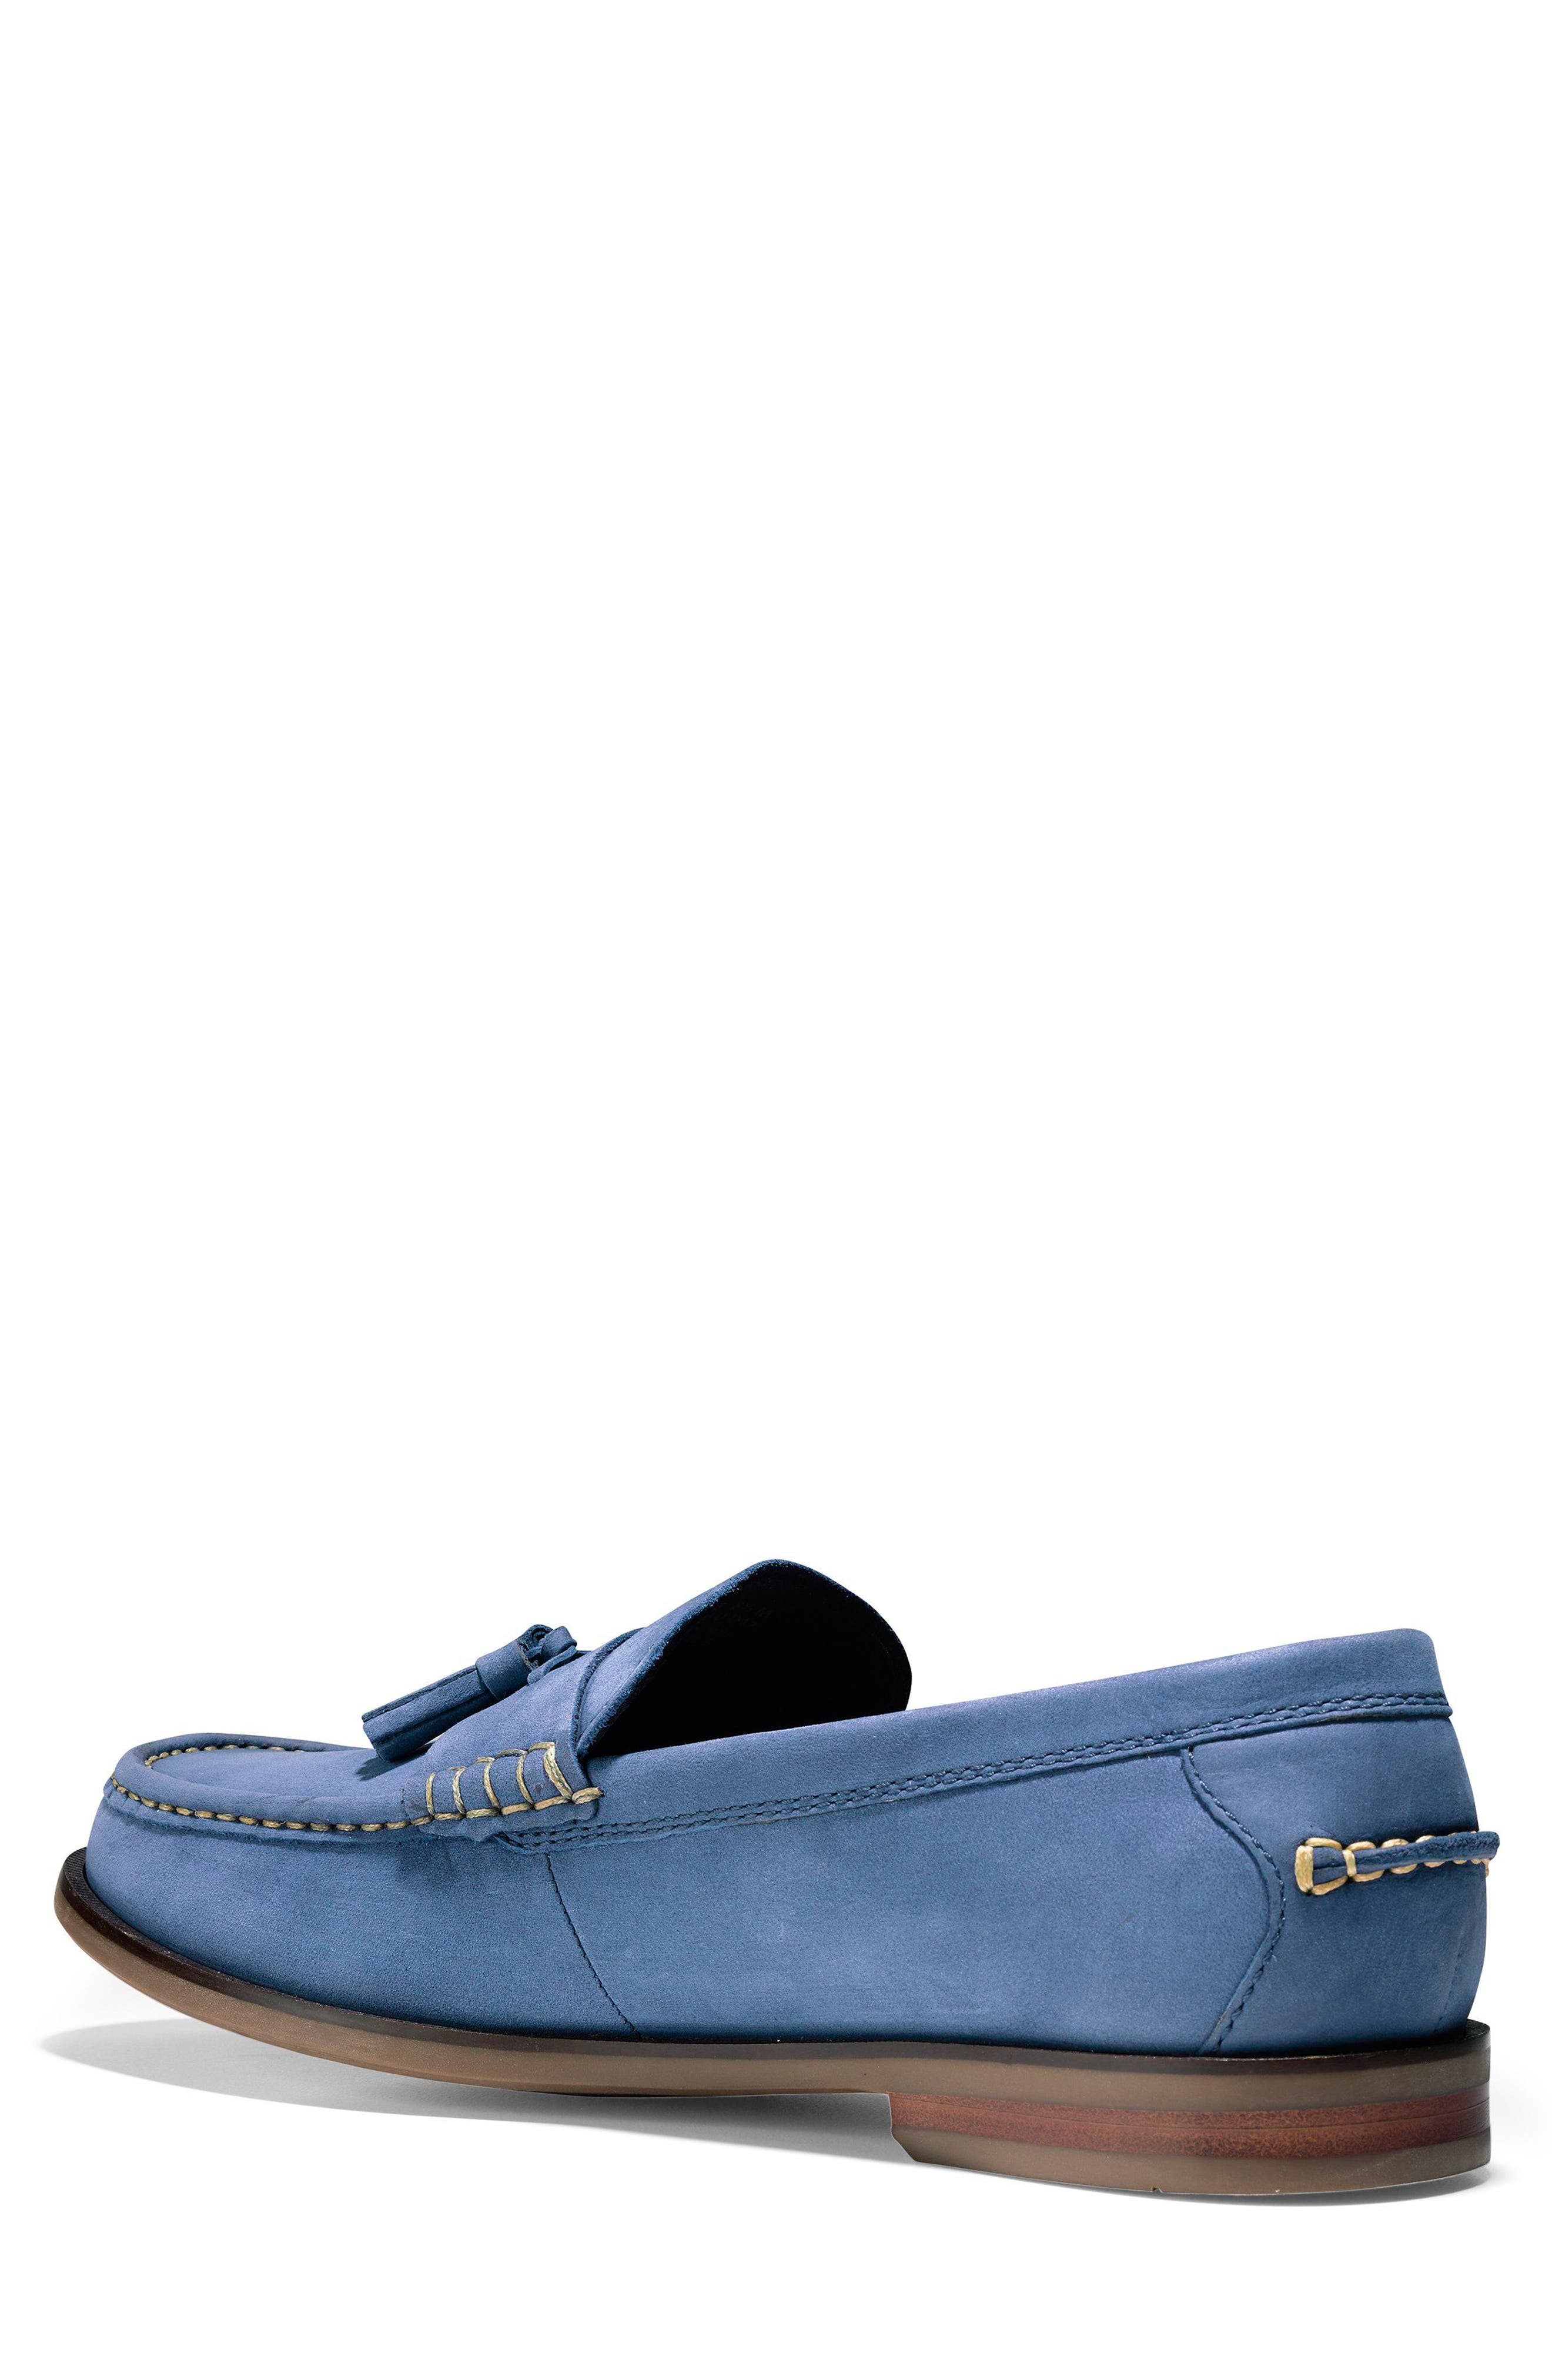 Pinch Friday Tassel Loafer,                             Alternate thumbnail 2, color,                             400